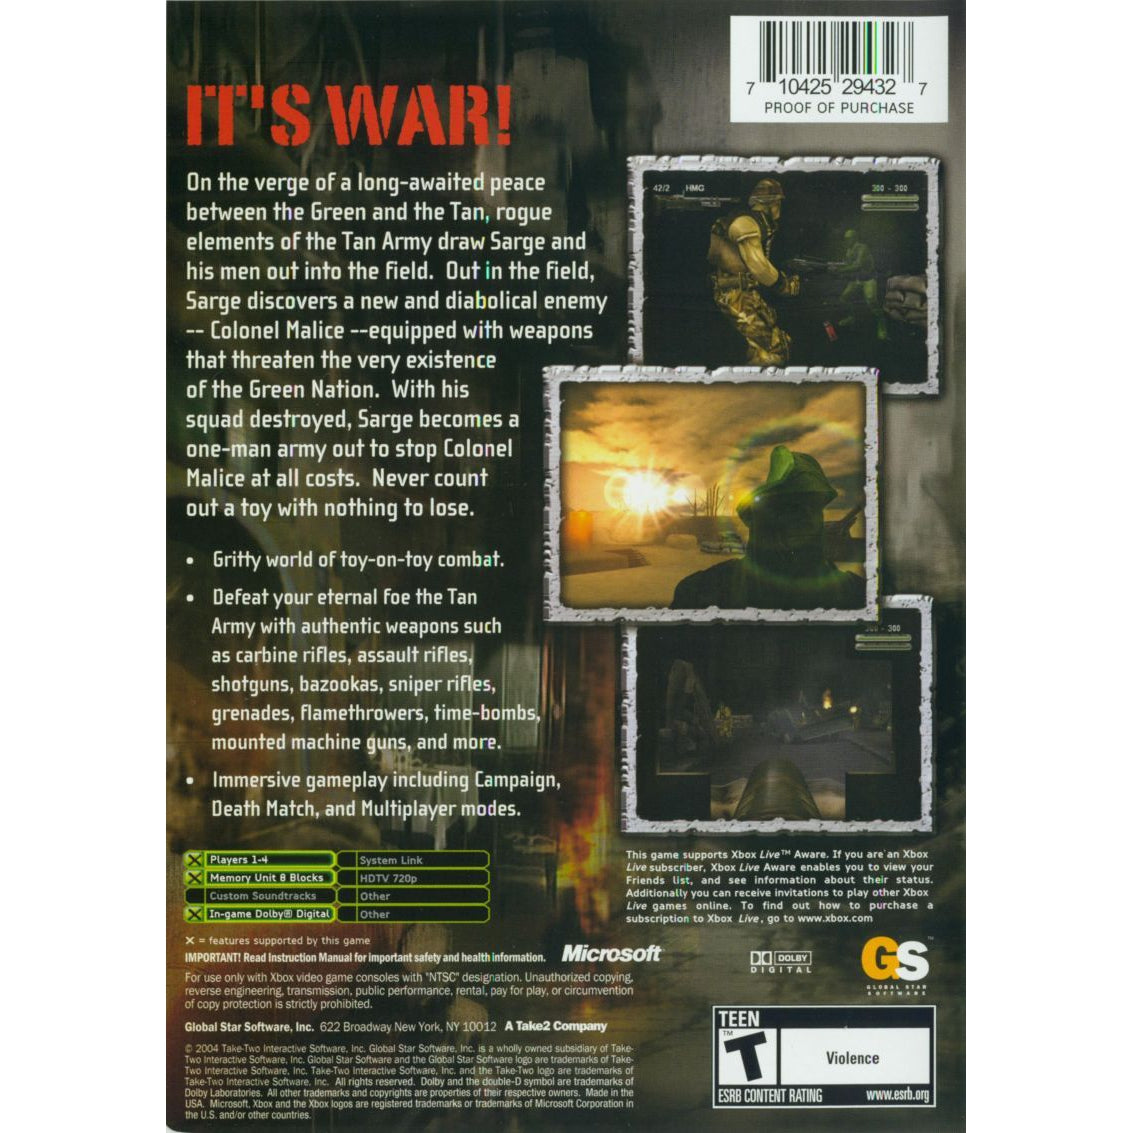 Army Men: Sarge's War - Microsoft Xbox Game Complete - YourGamingShop.com - Buy, Sell, Trade Video Games Online. 120 Day Warranty. Satisfaction Guaranteed.